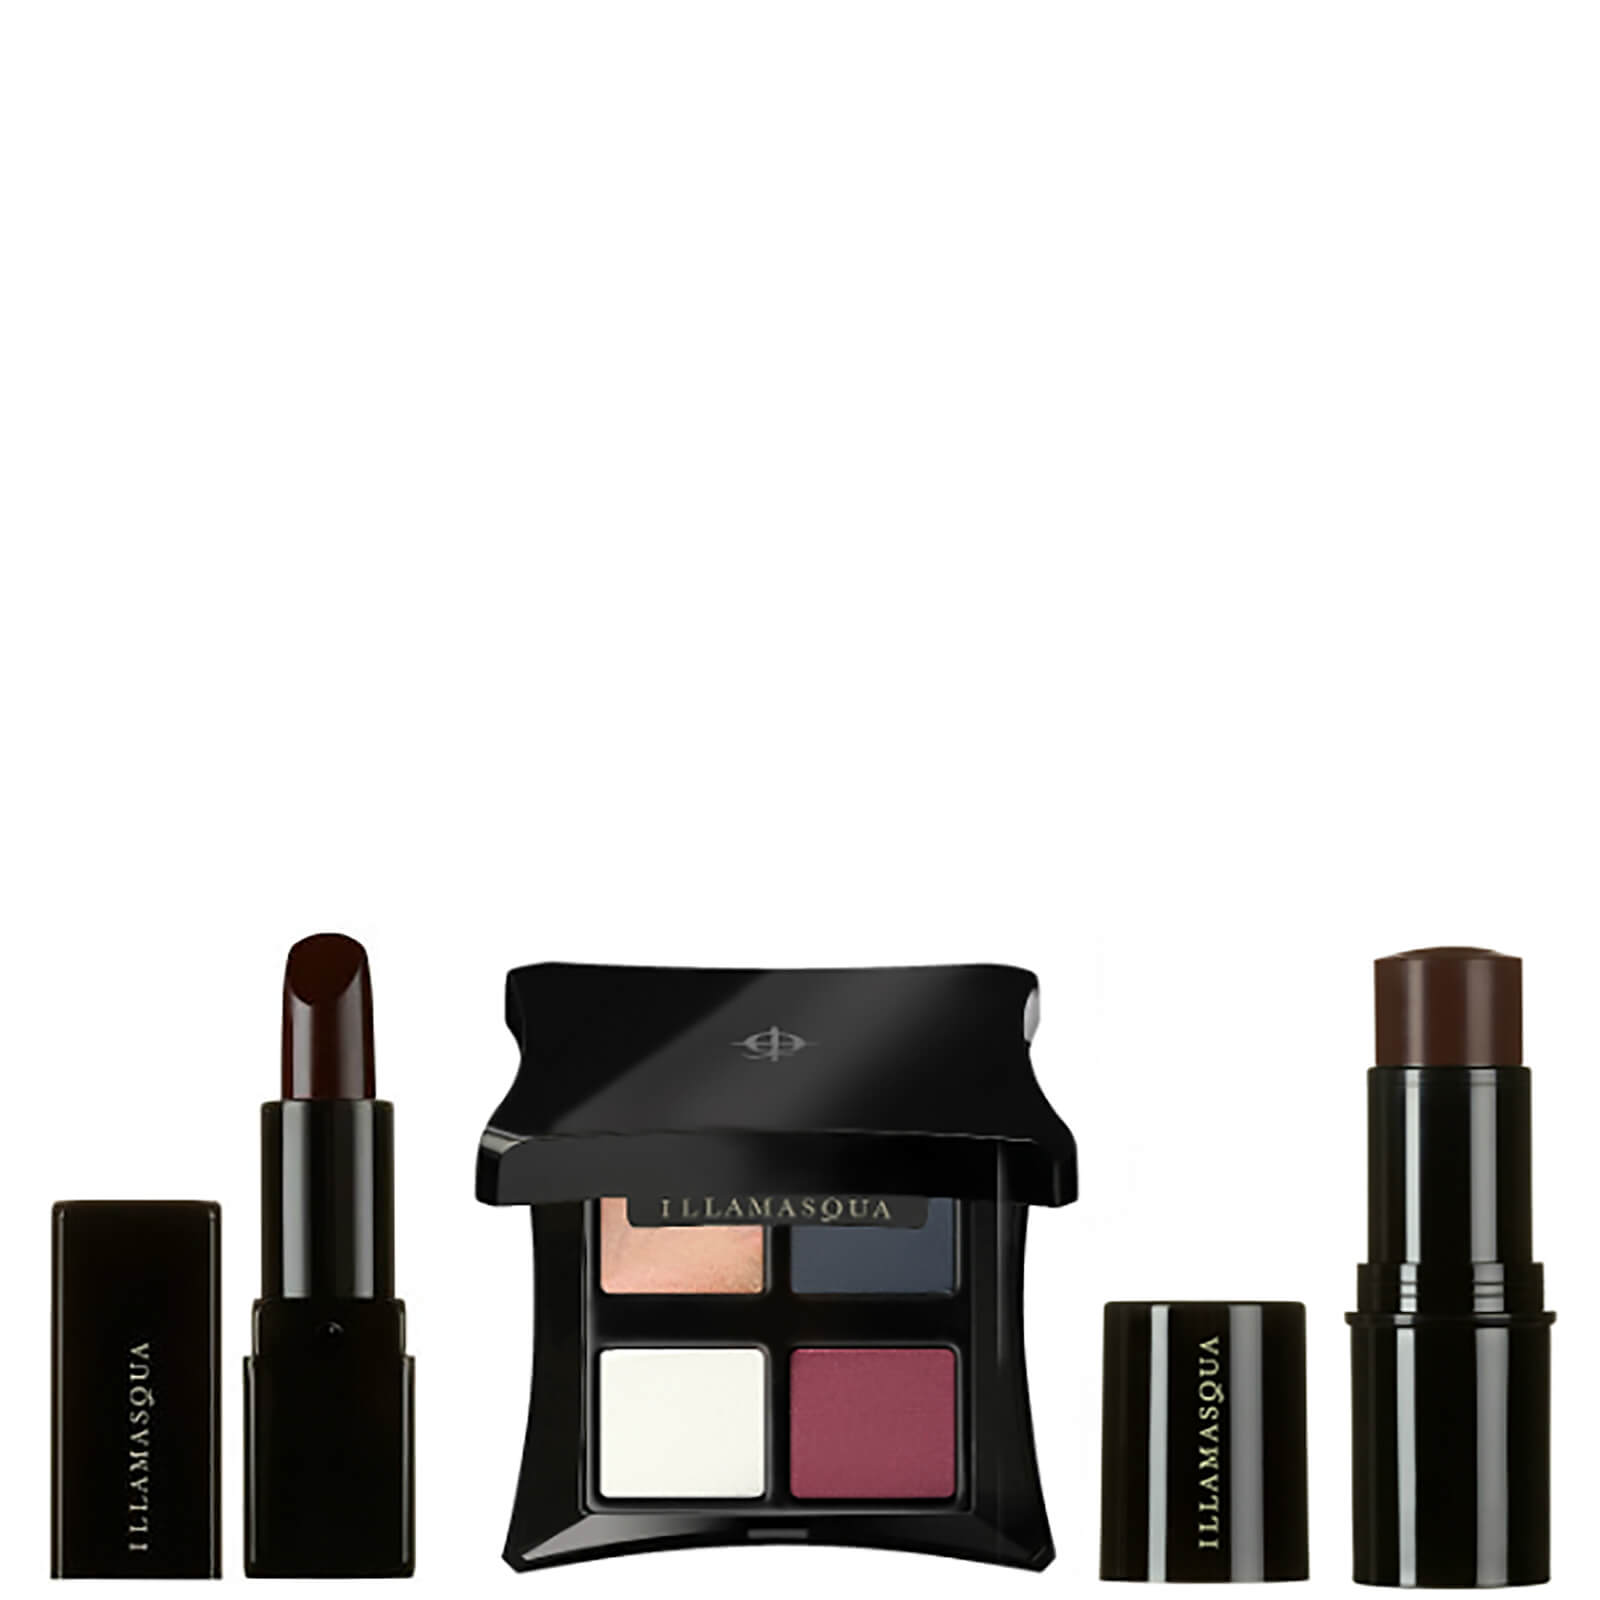 The Pro Edit: Vampy Chic (Worth £75.00)